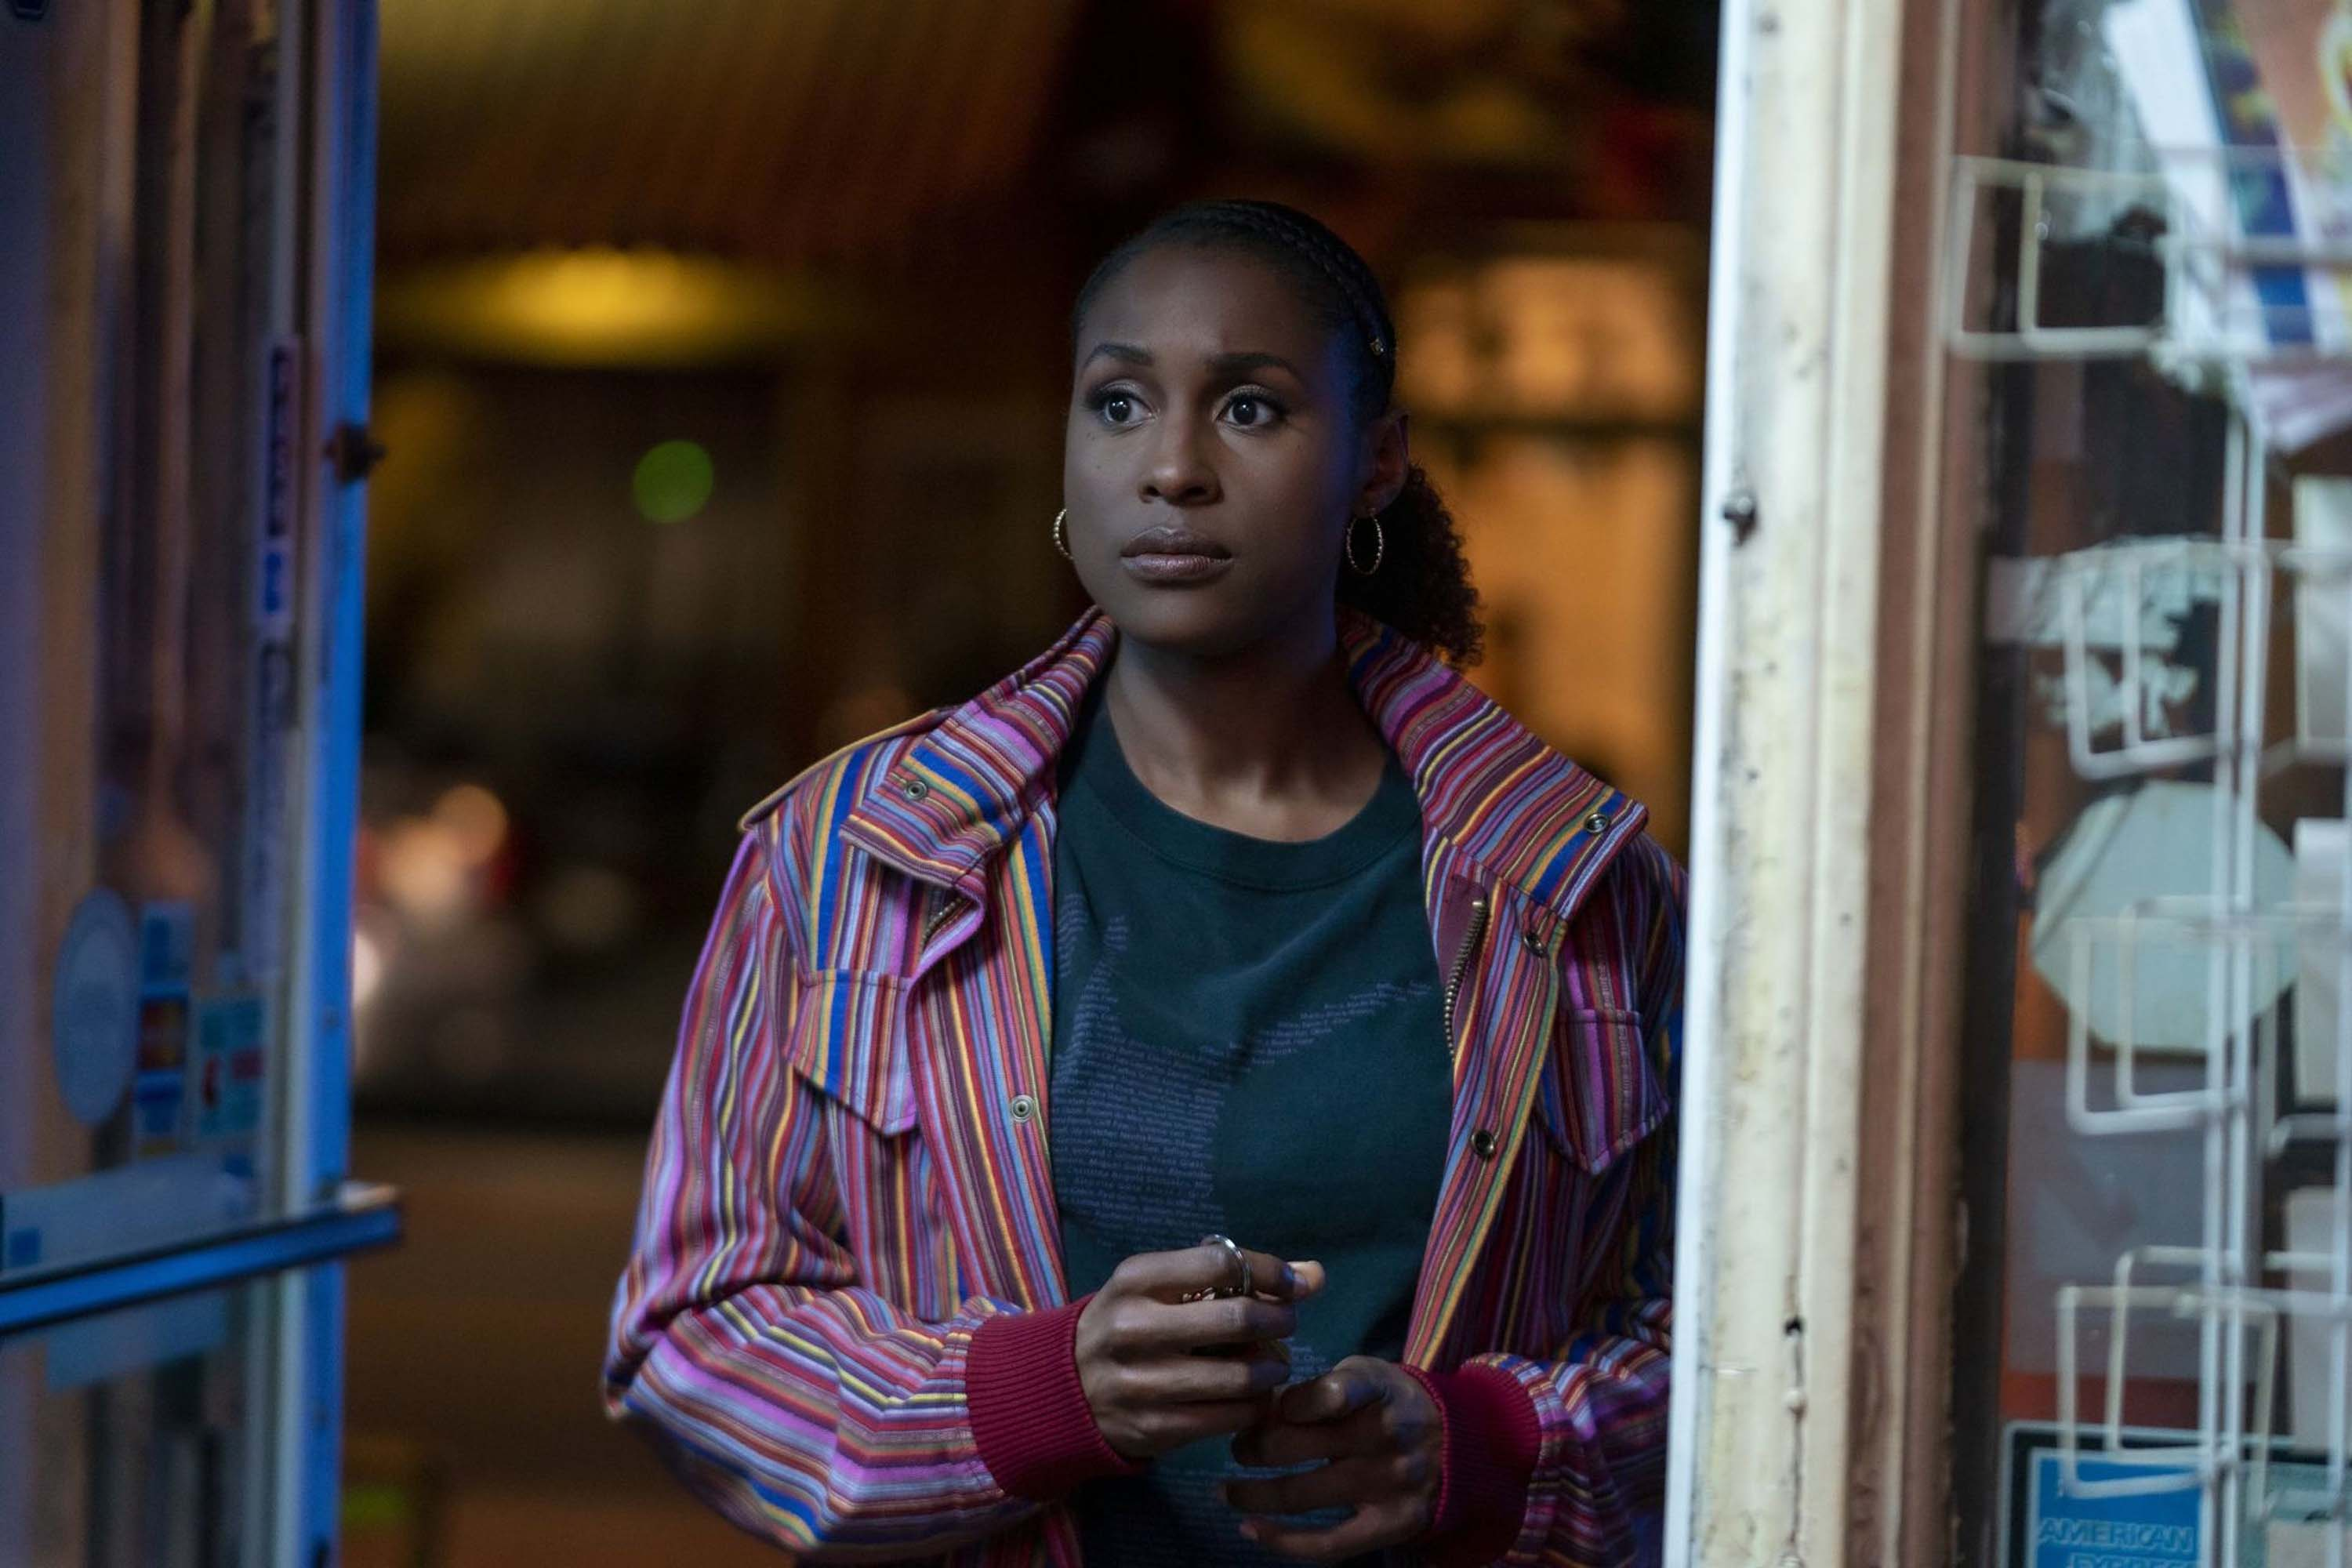 'Insecure' star Issa Rae is helping PepsiCo's LIFEWTR brand find the next Issa Rae